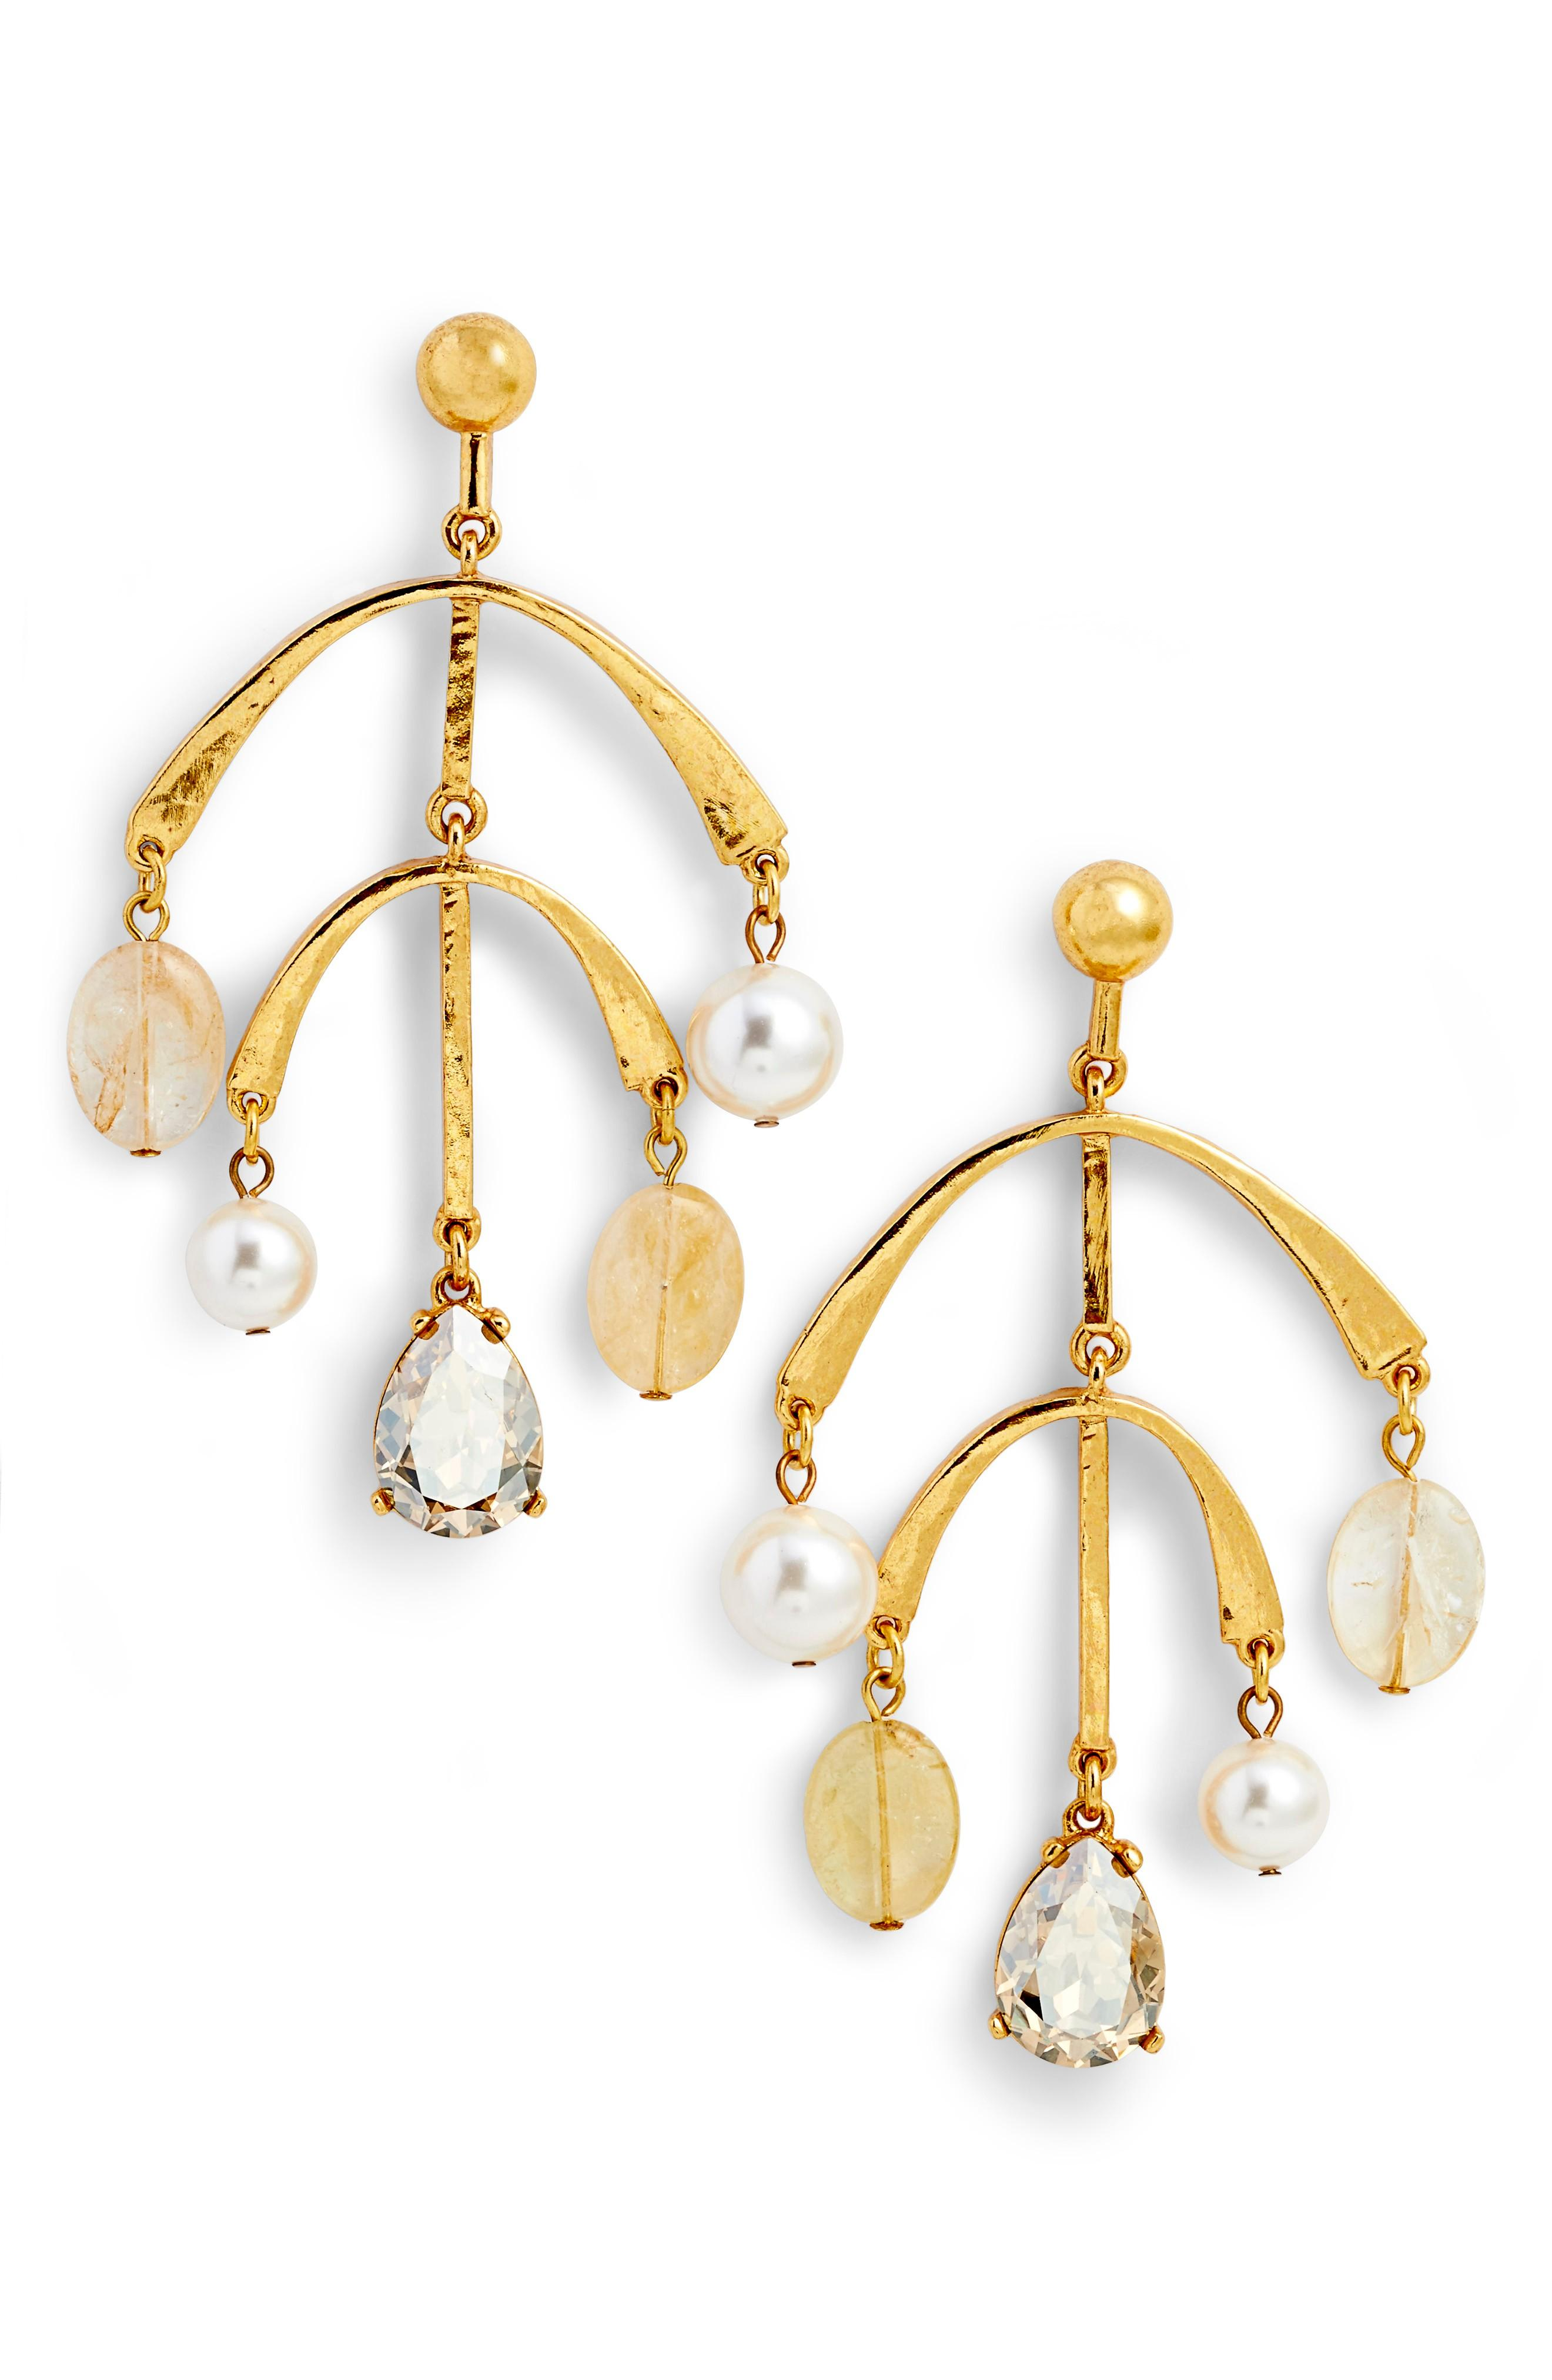 Oscar De La Renta Mobile Drop Earring With Imitation Pearl In Cry Gold Shadow